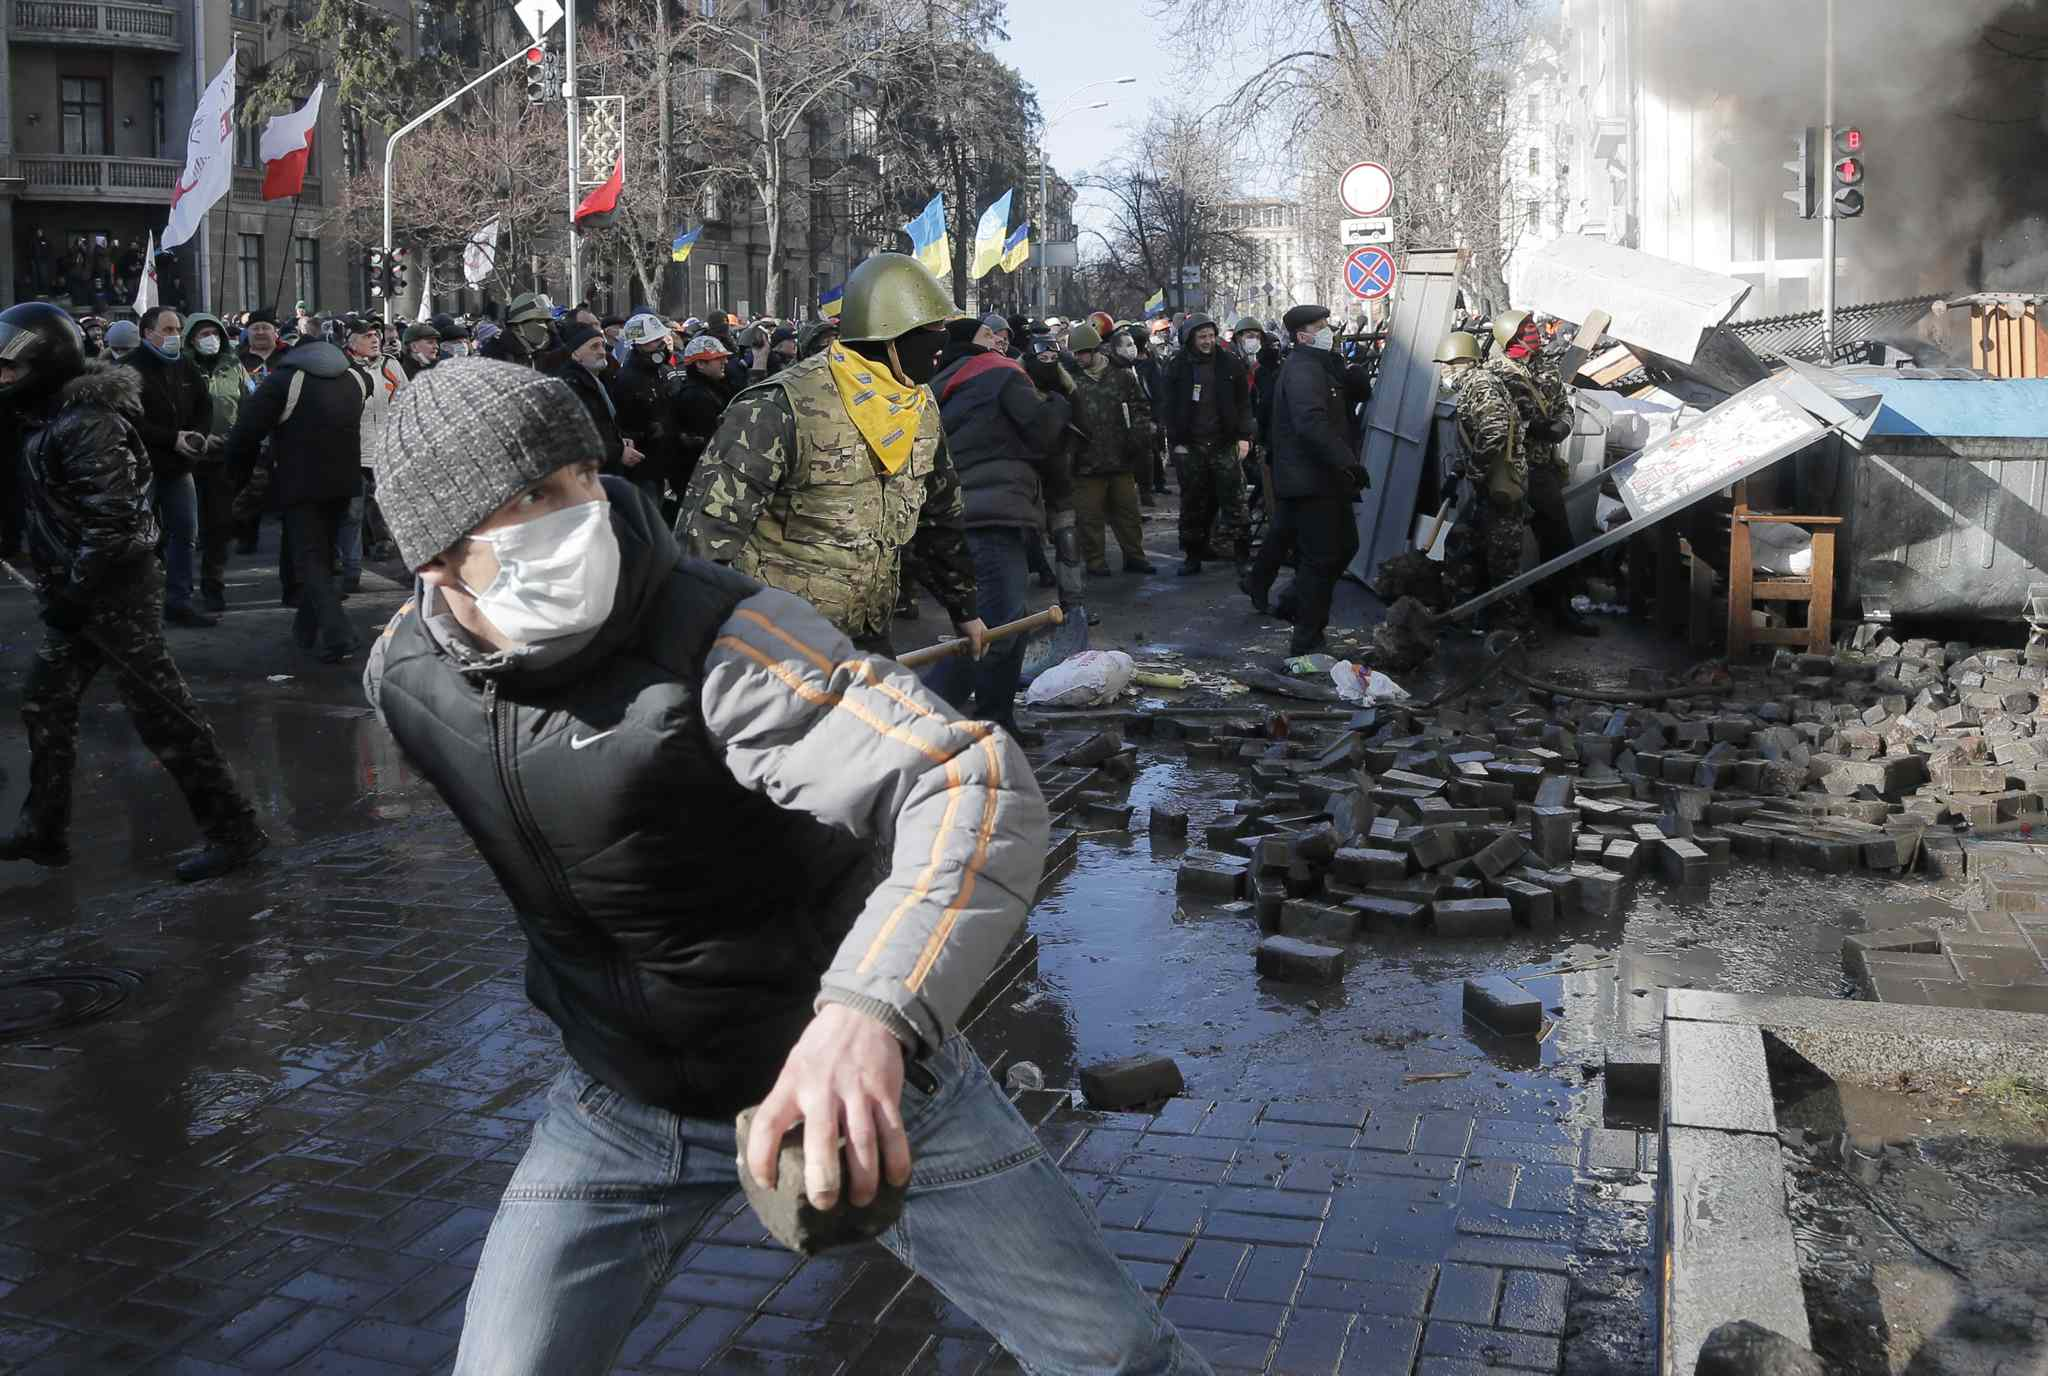 Anti-government protesters lob stones during clashes with riot police outside Ukraine's parliament in Kyiv, Ukraine on Tuesday.